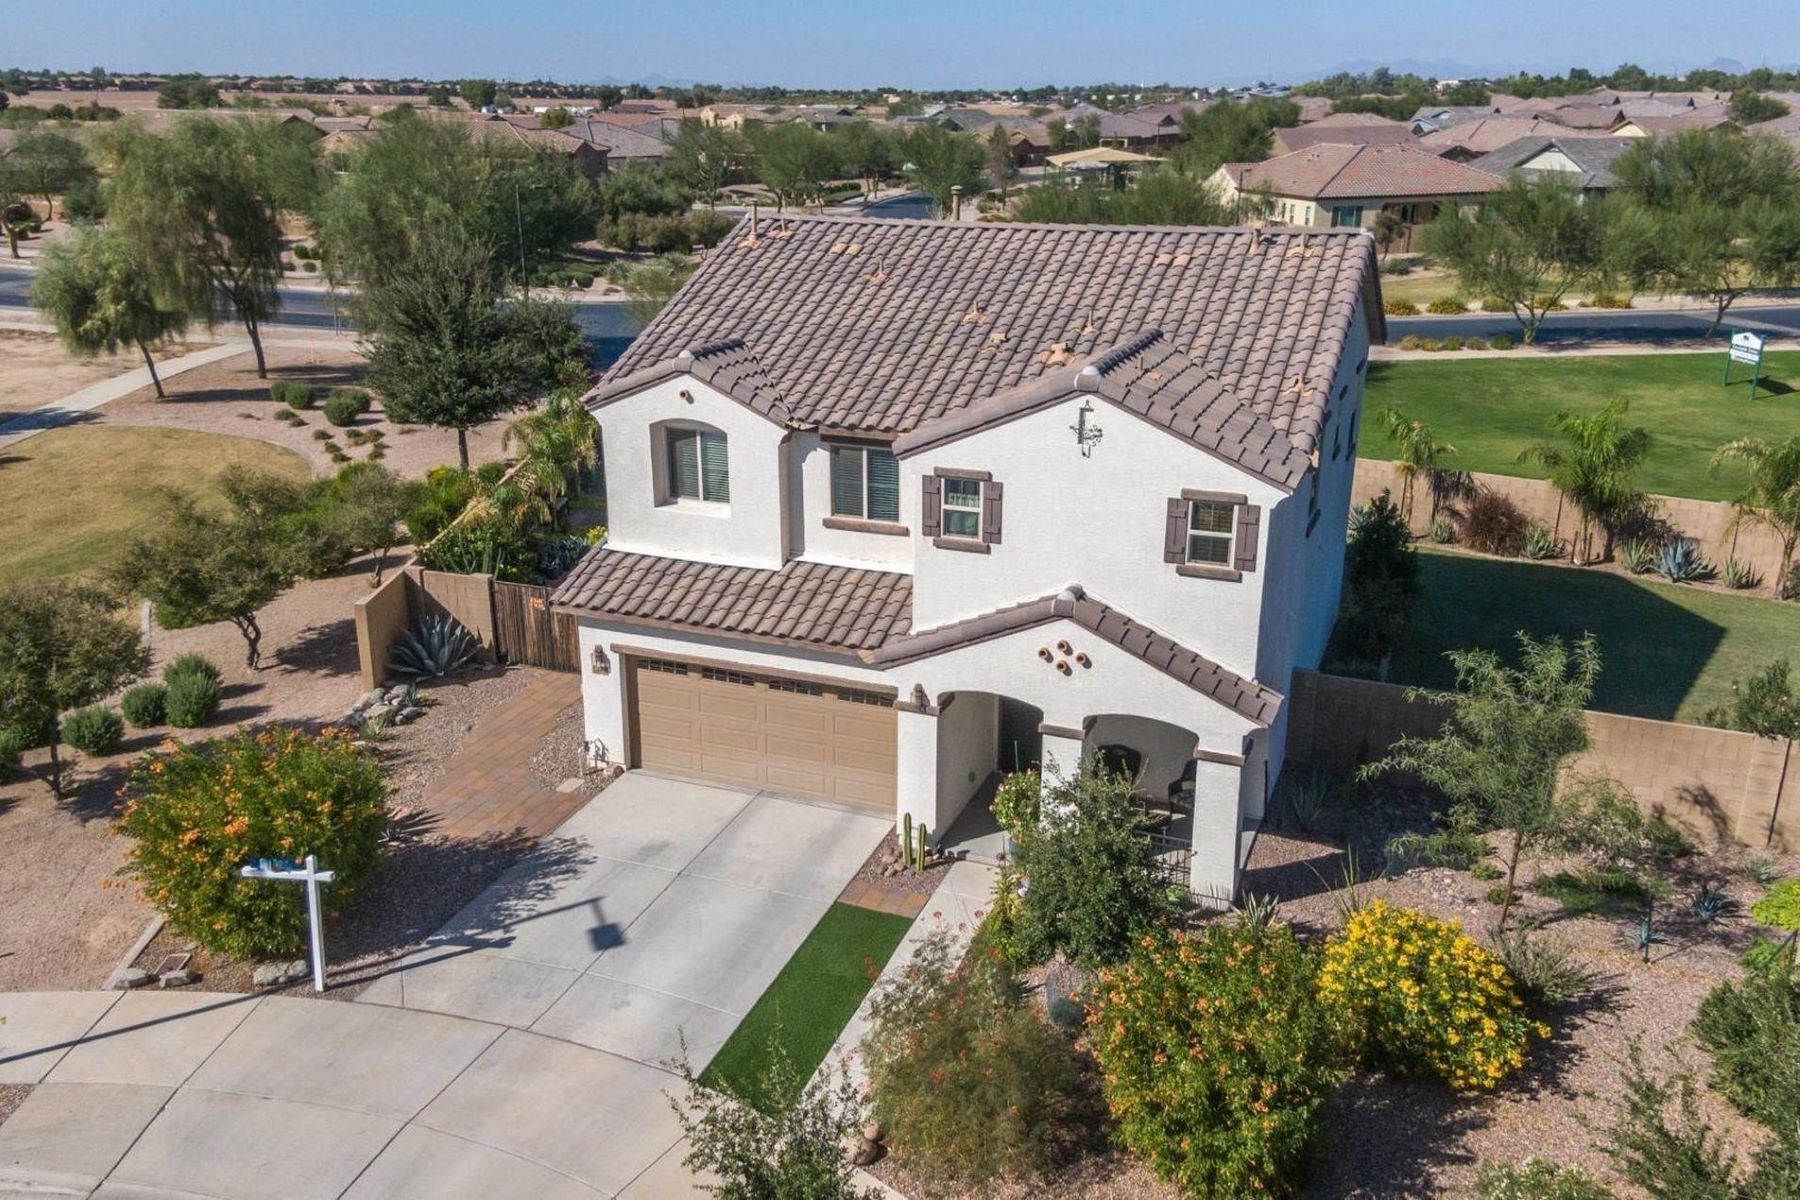 Single Family Homes for Sale at Hastings Farms 23609 S 209TH CT Queen Creek, Arizona 85142 United States